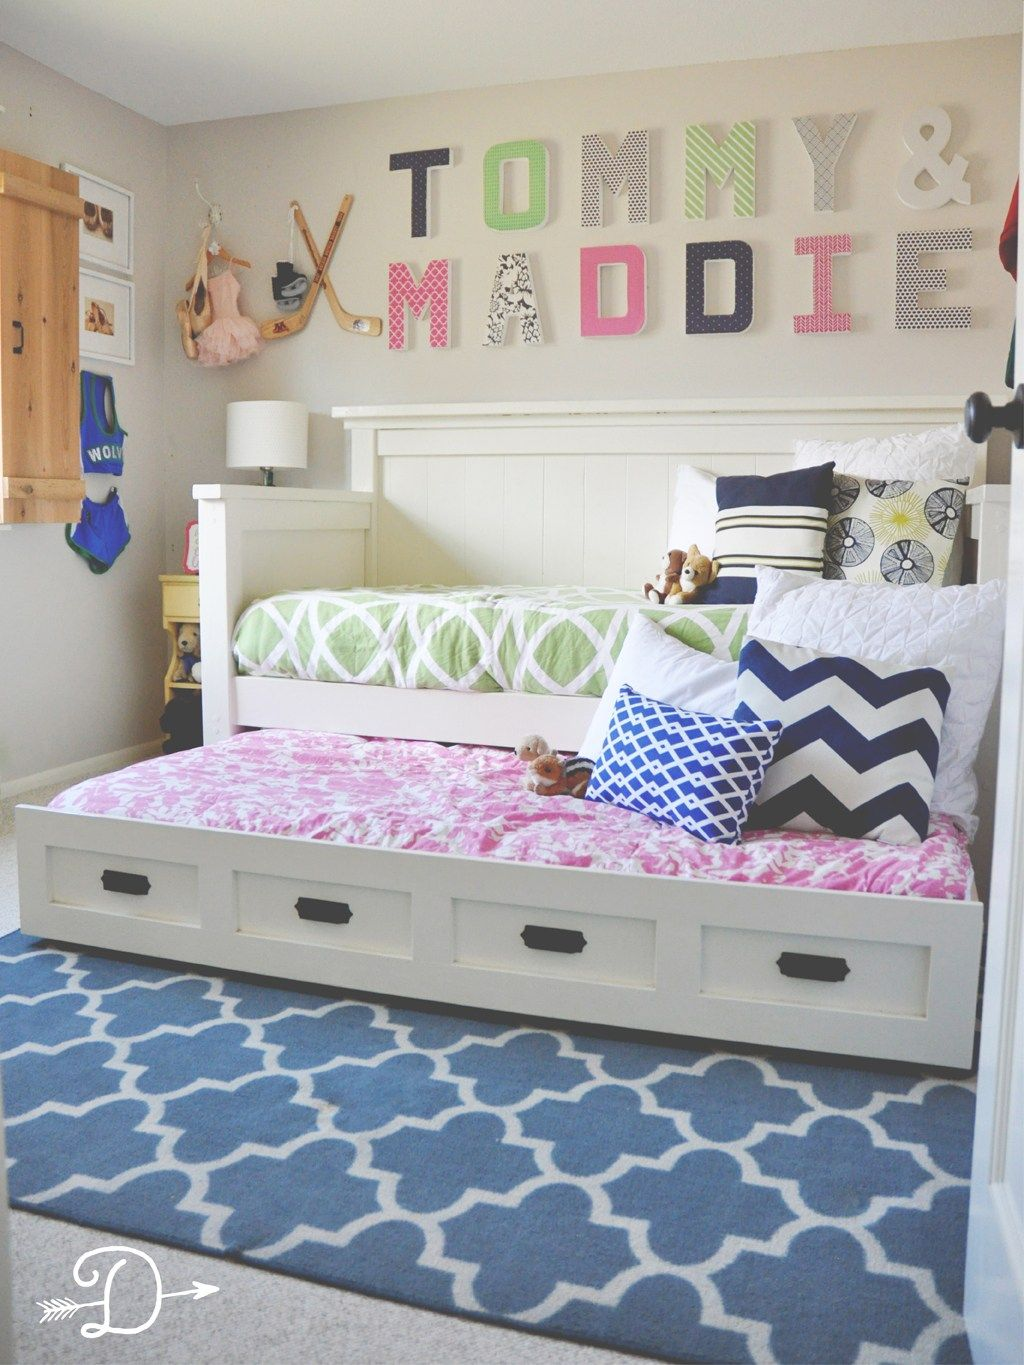 Saving For The Daybed Style Boy And Girl Shared Bedroom Diy